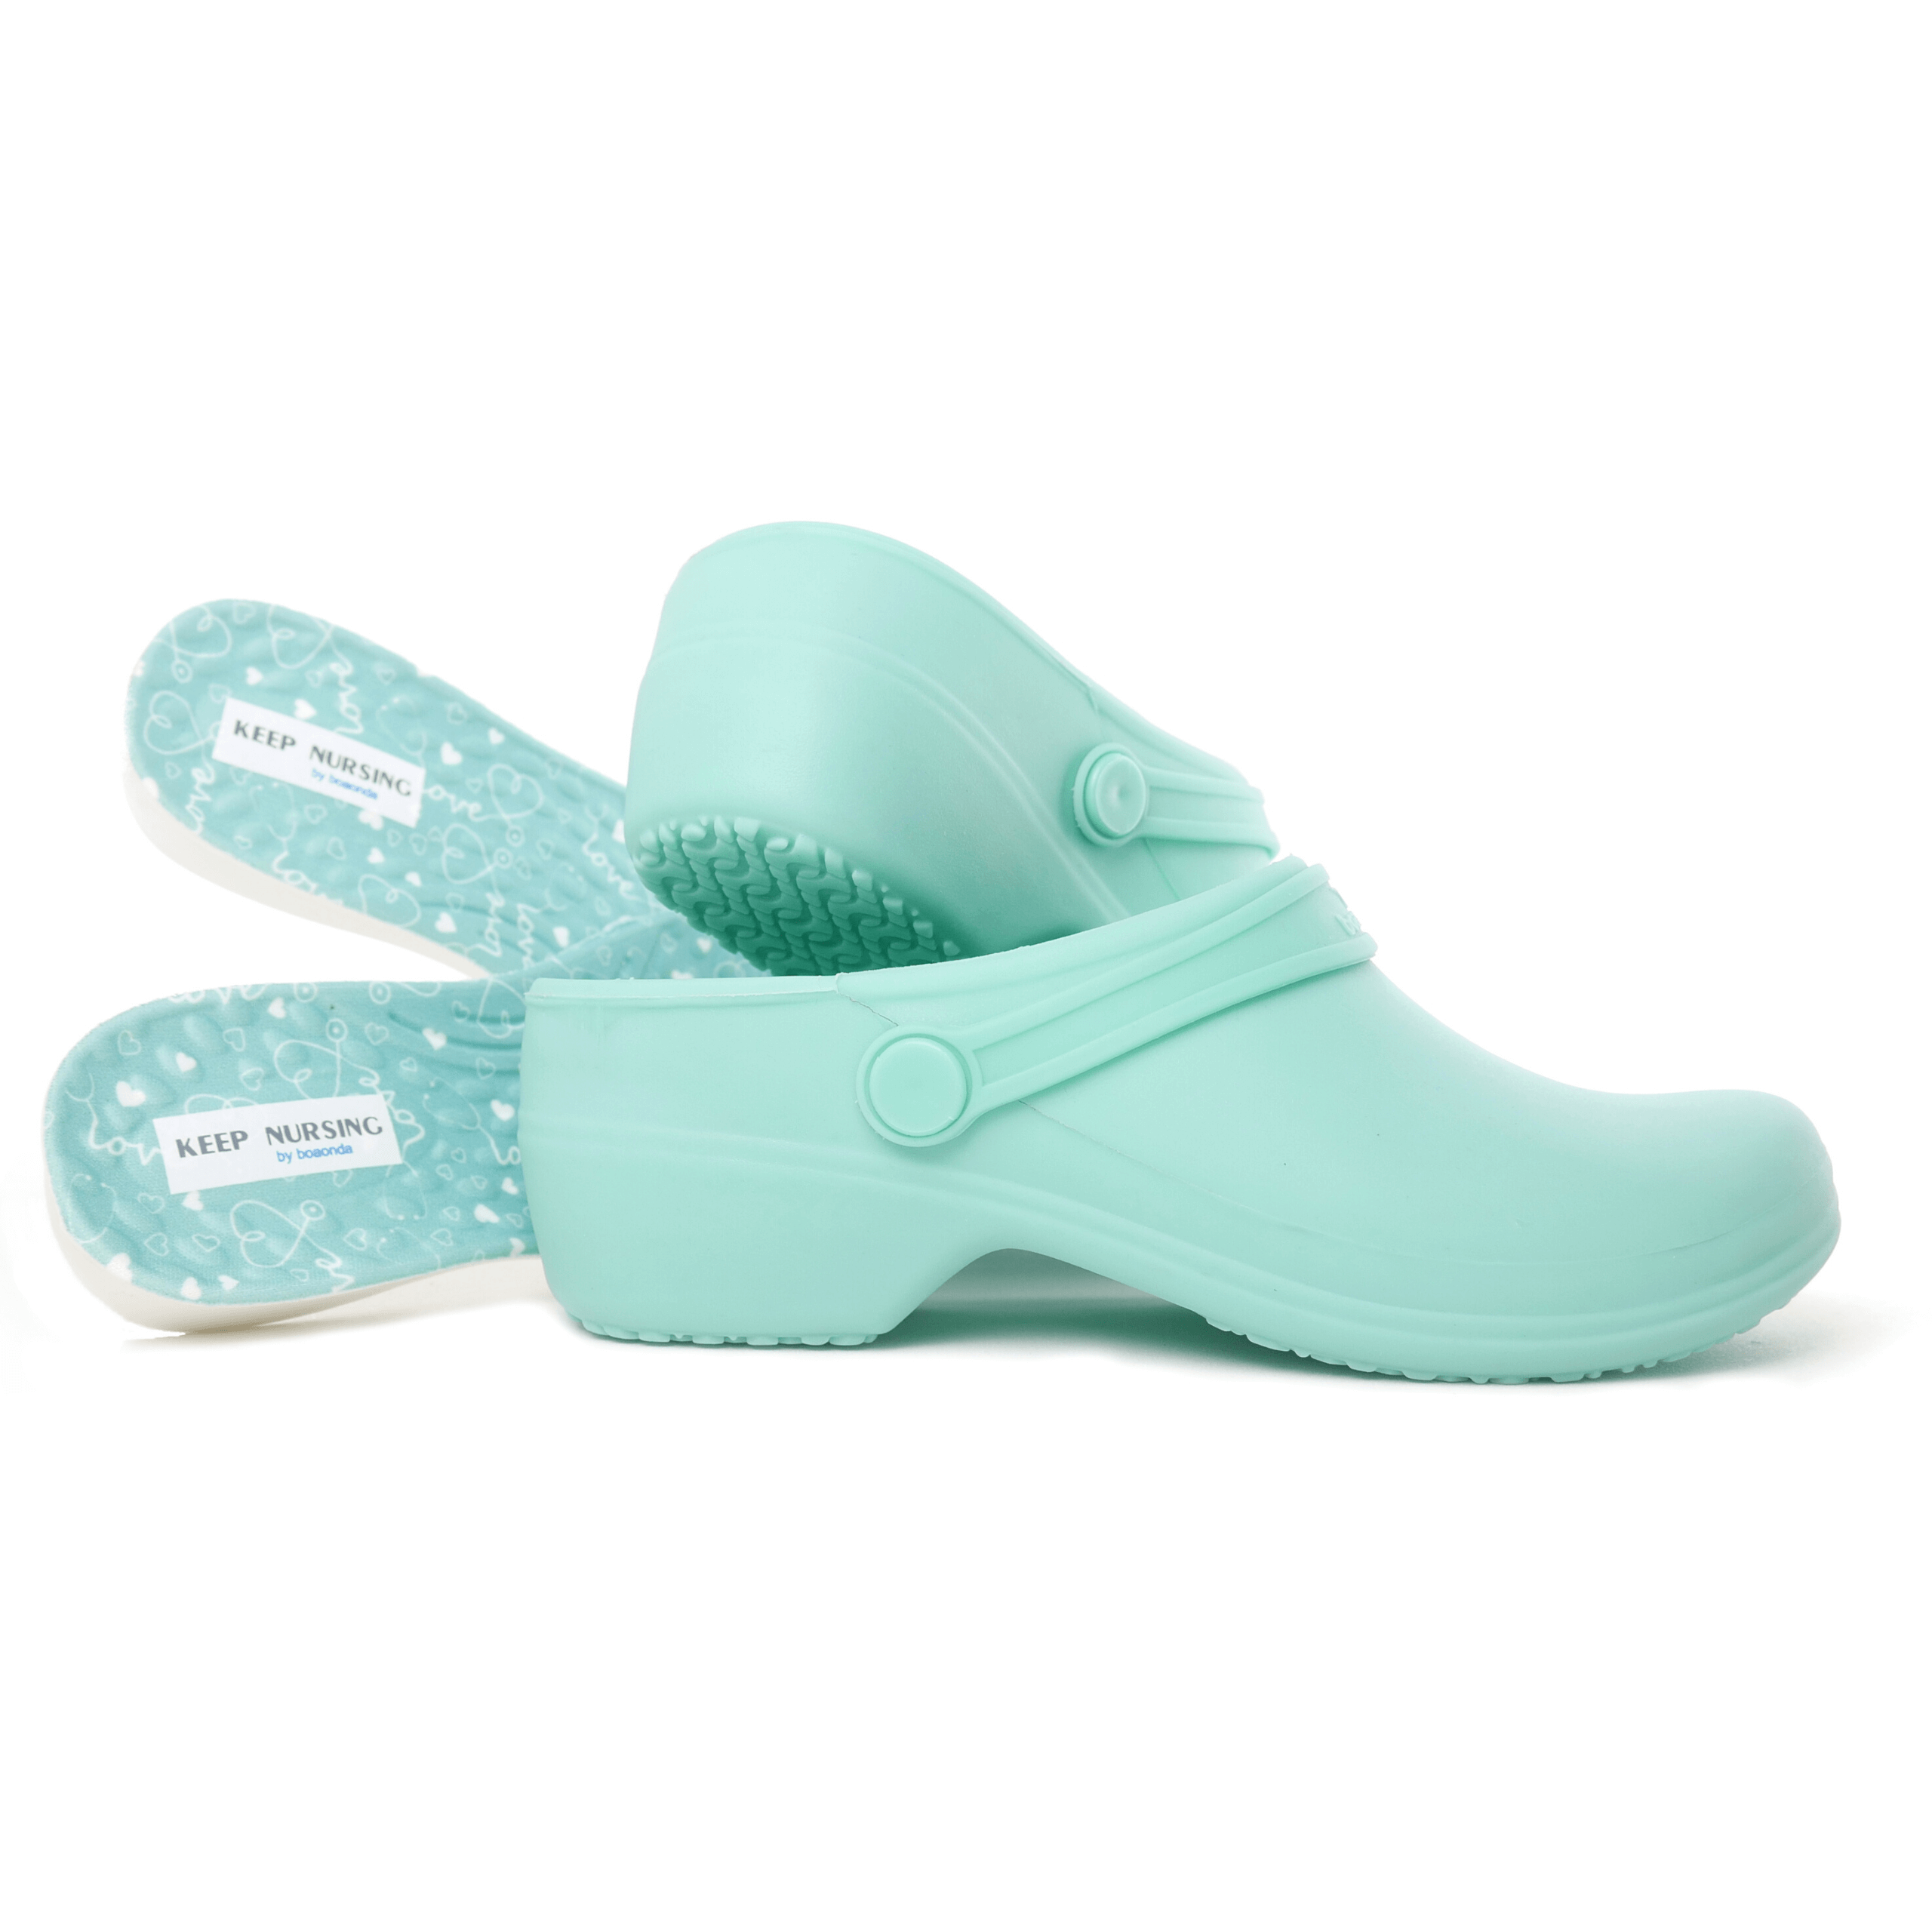 Bio Nurse Clogs - Light Green with printed insole - Stetho Love